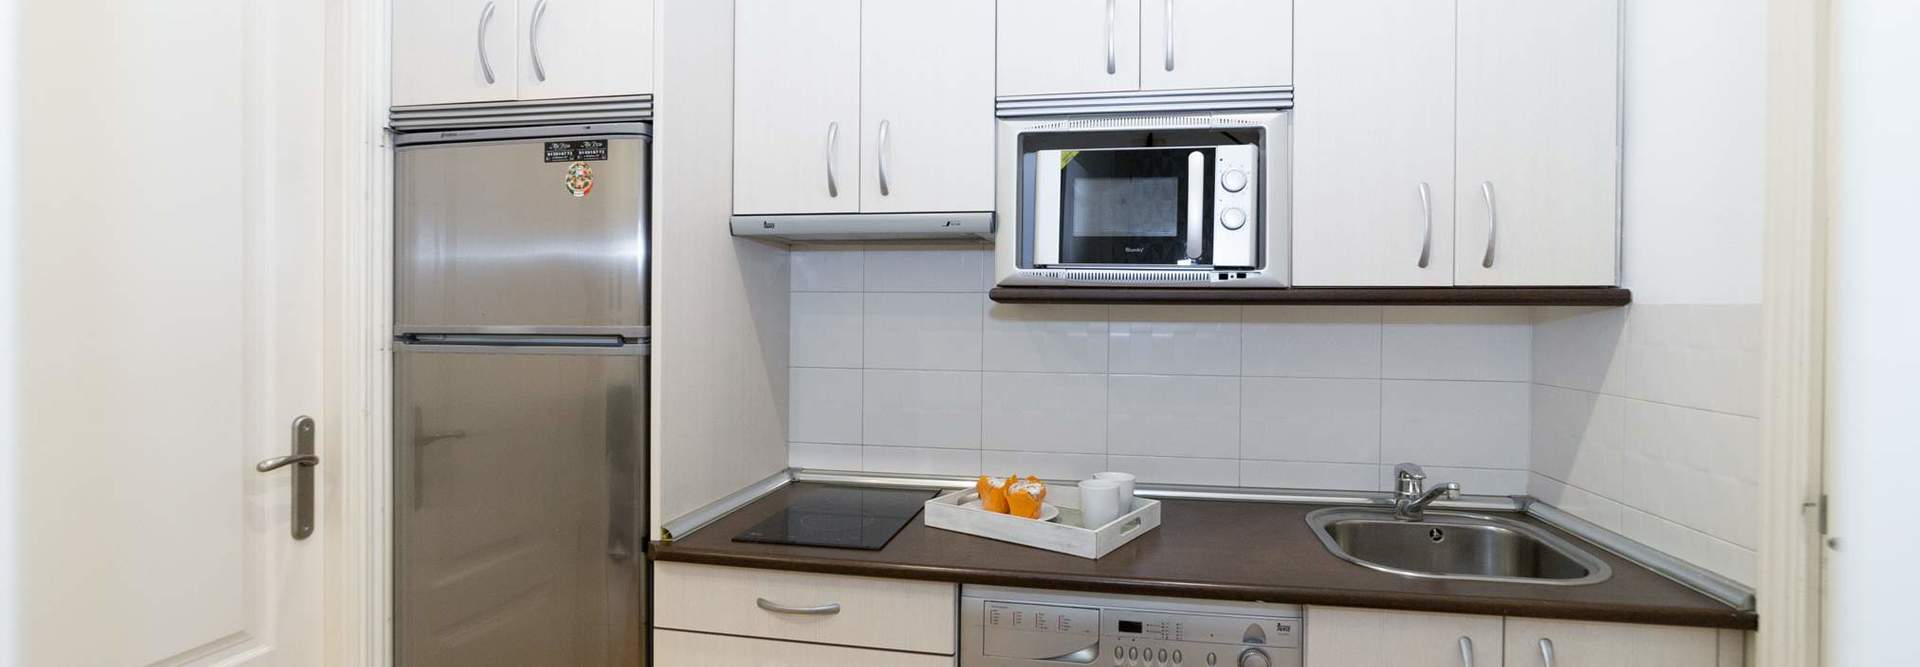 Home alquiler apartamentos madrid mad4rent 19